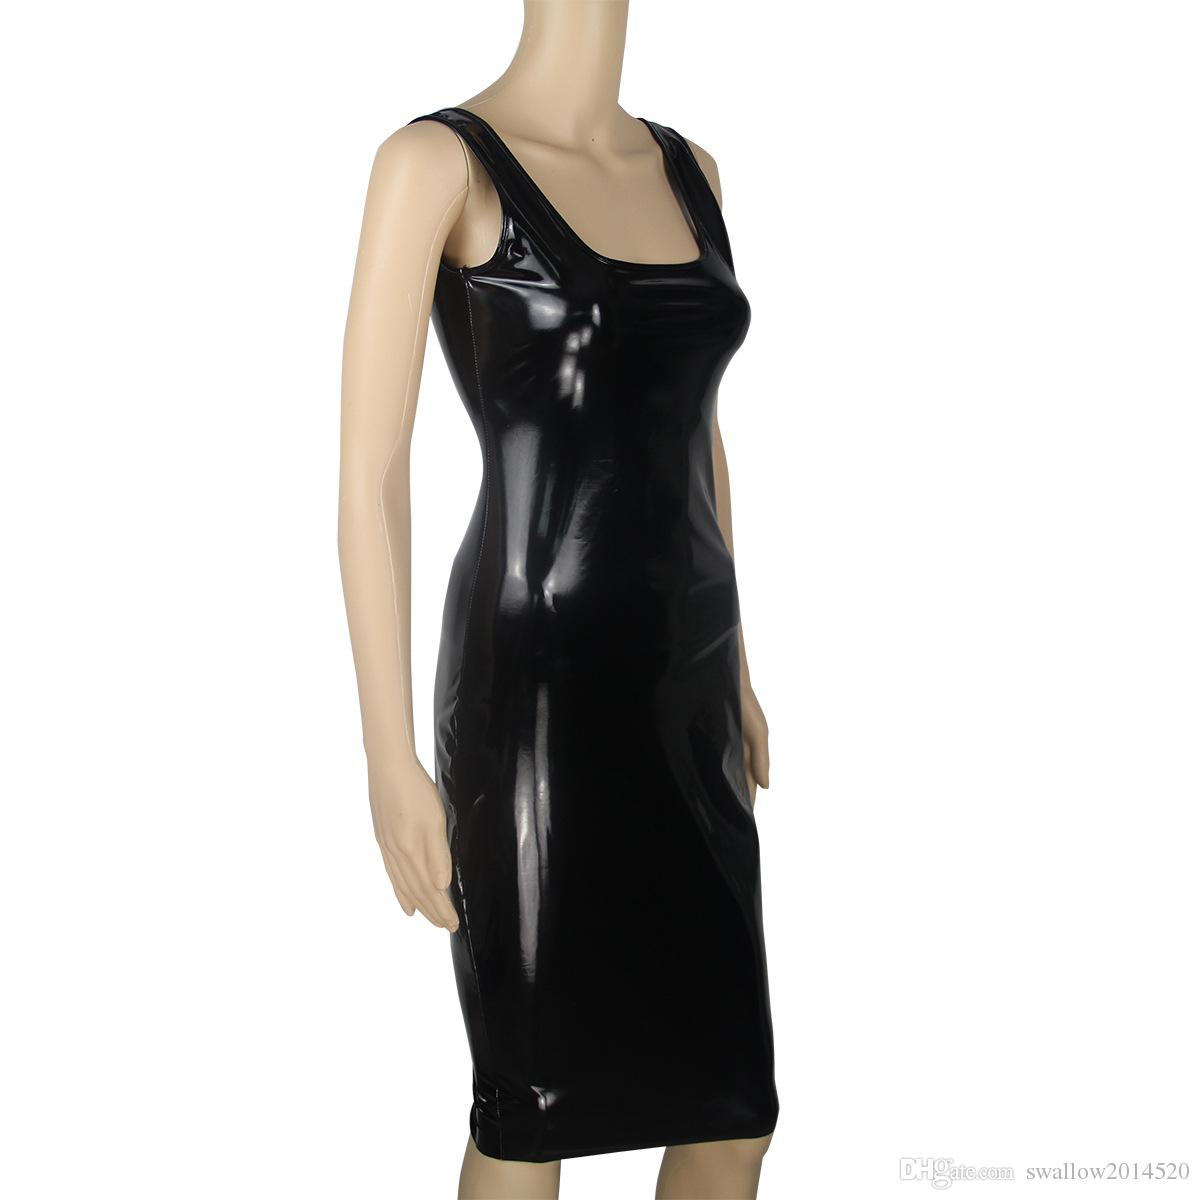 Sexy cosplay Women Black Sexy Leather Dress Latex Club Wear Costumes Clothing PVC Lingerie Catsuits Cat Suits Sex Products